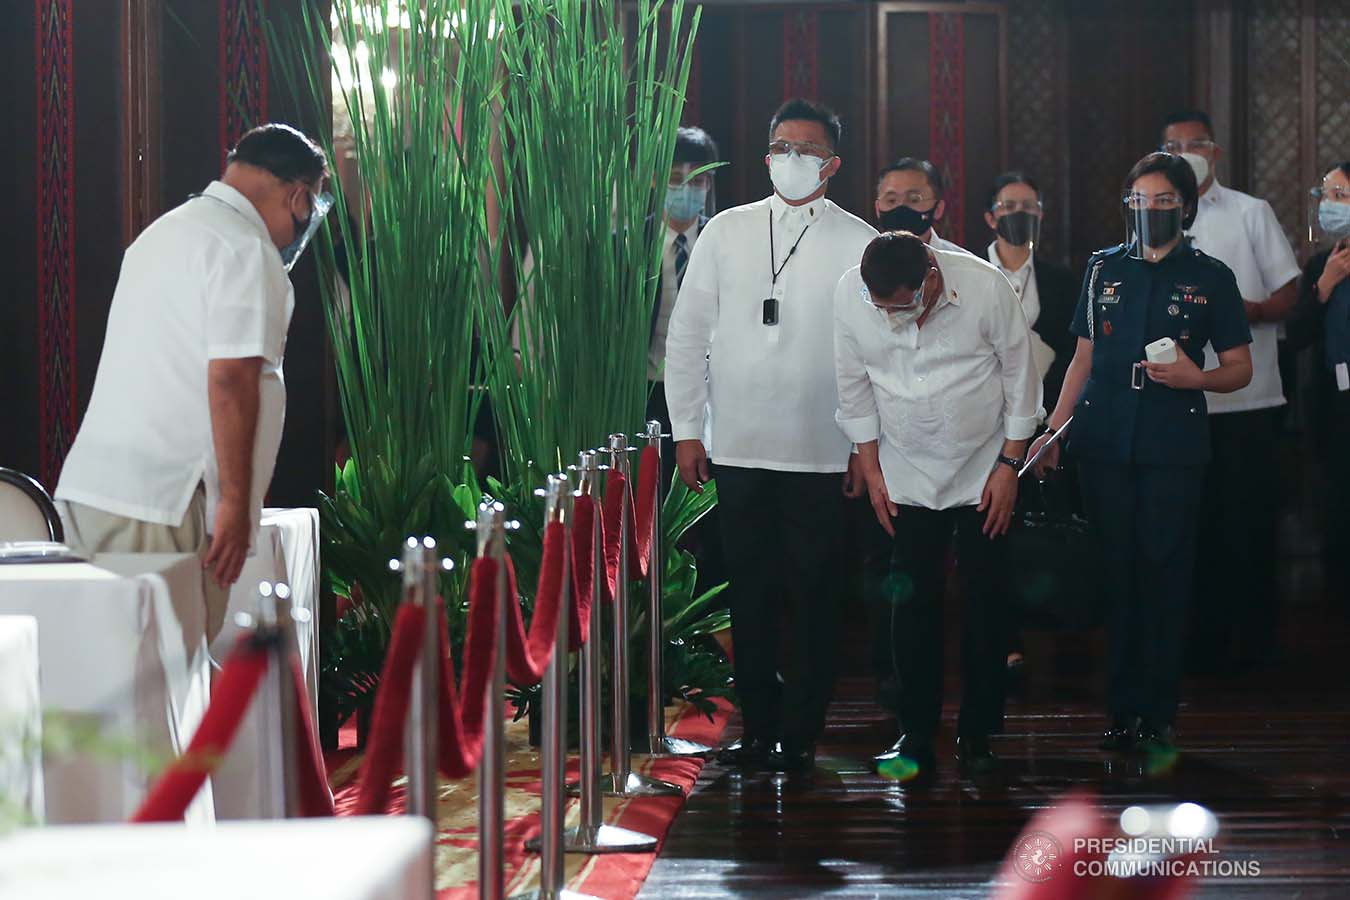 President Rodrigo Roa Duterte shows a gesture of respect upon his arrival at the Malacañan Palace for the 53rd Cabinet Meeting on March 3, 2021. KARL NORMAN ALONZO/ PRESIDENTIAL PHOTO